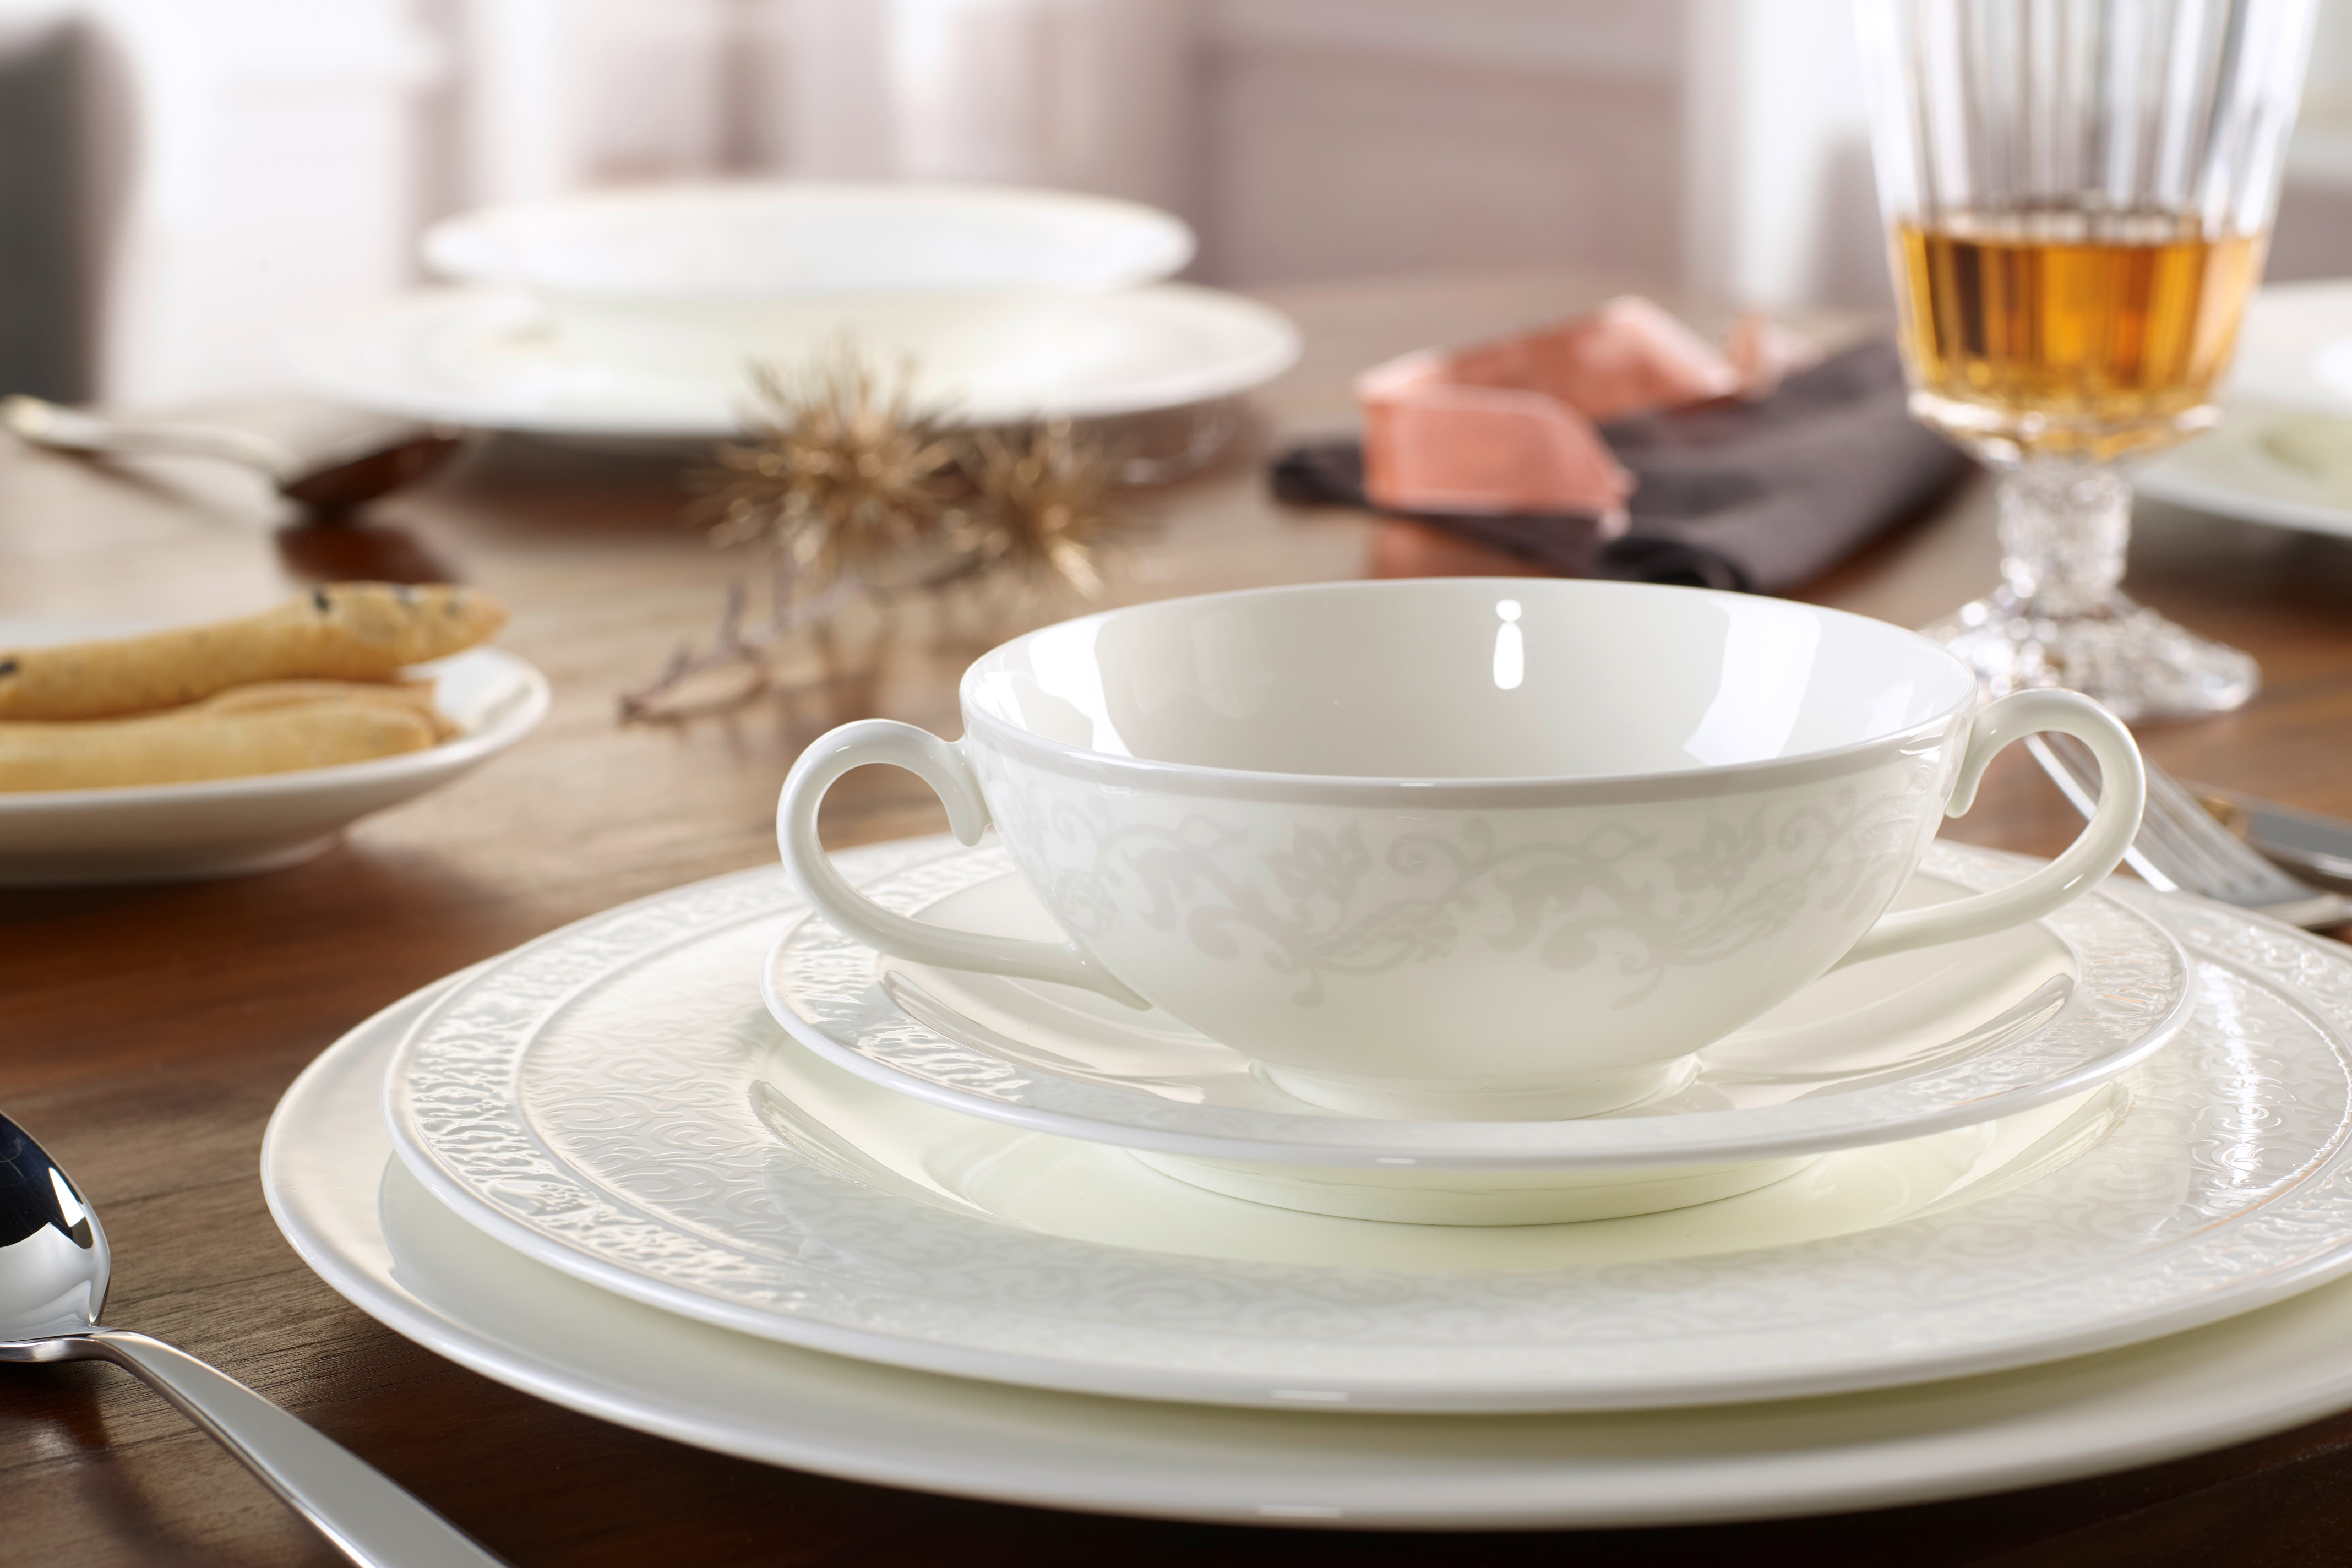 Villeroy boch gray pearl plates tea coffee for Villeroy and boch plates